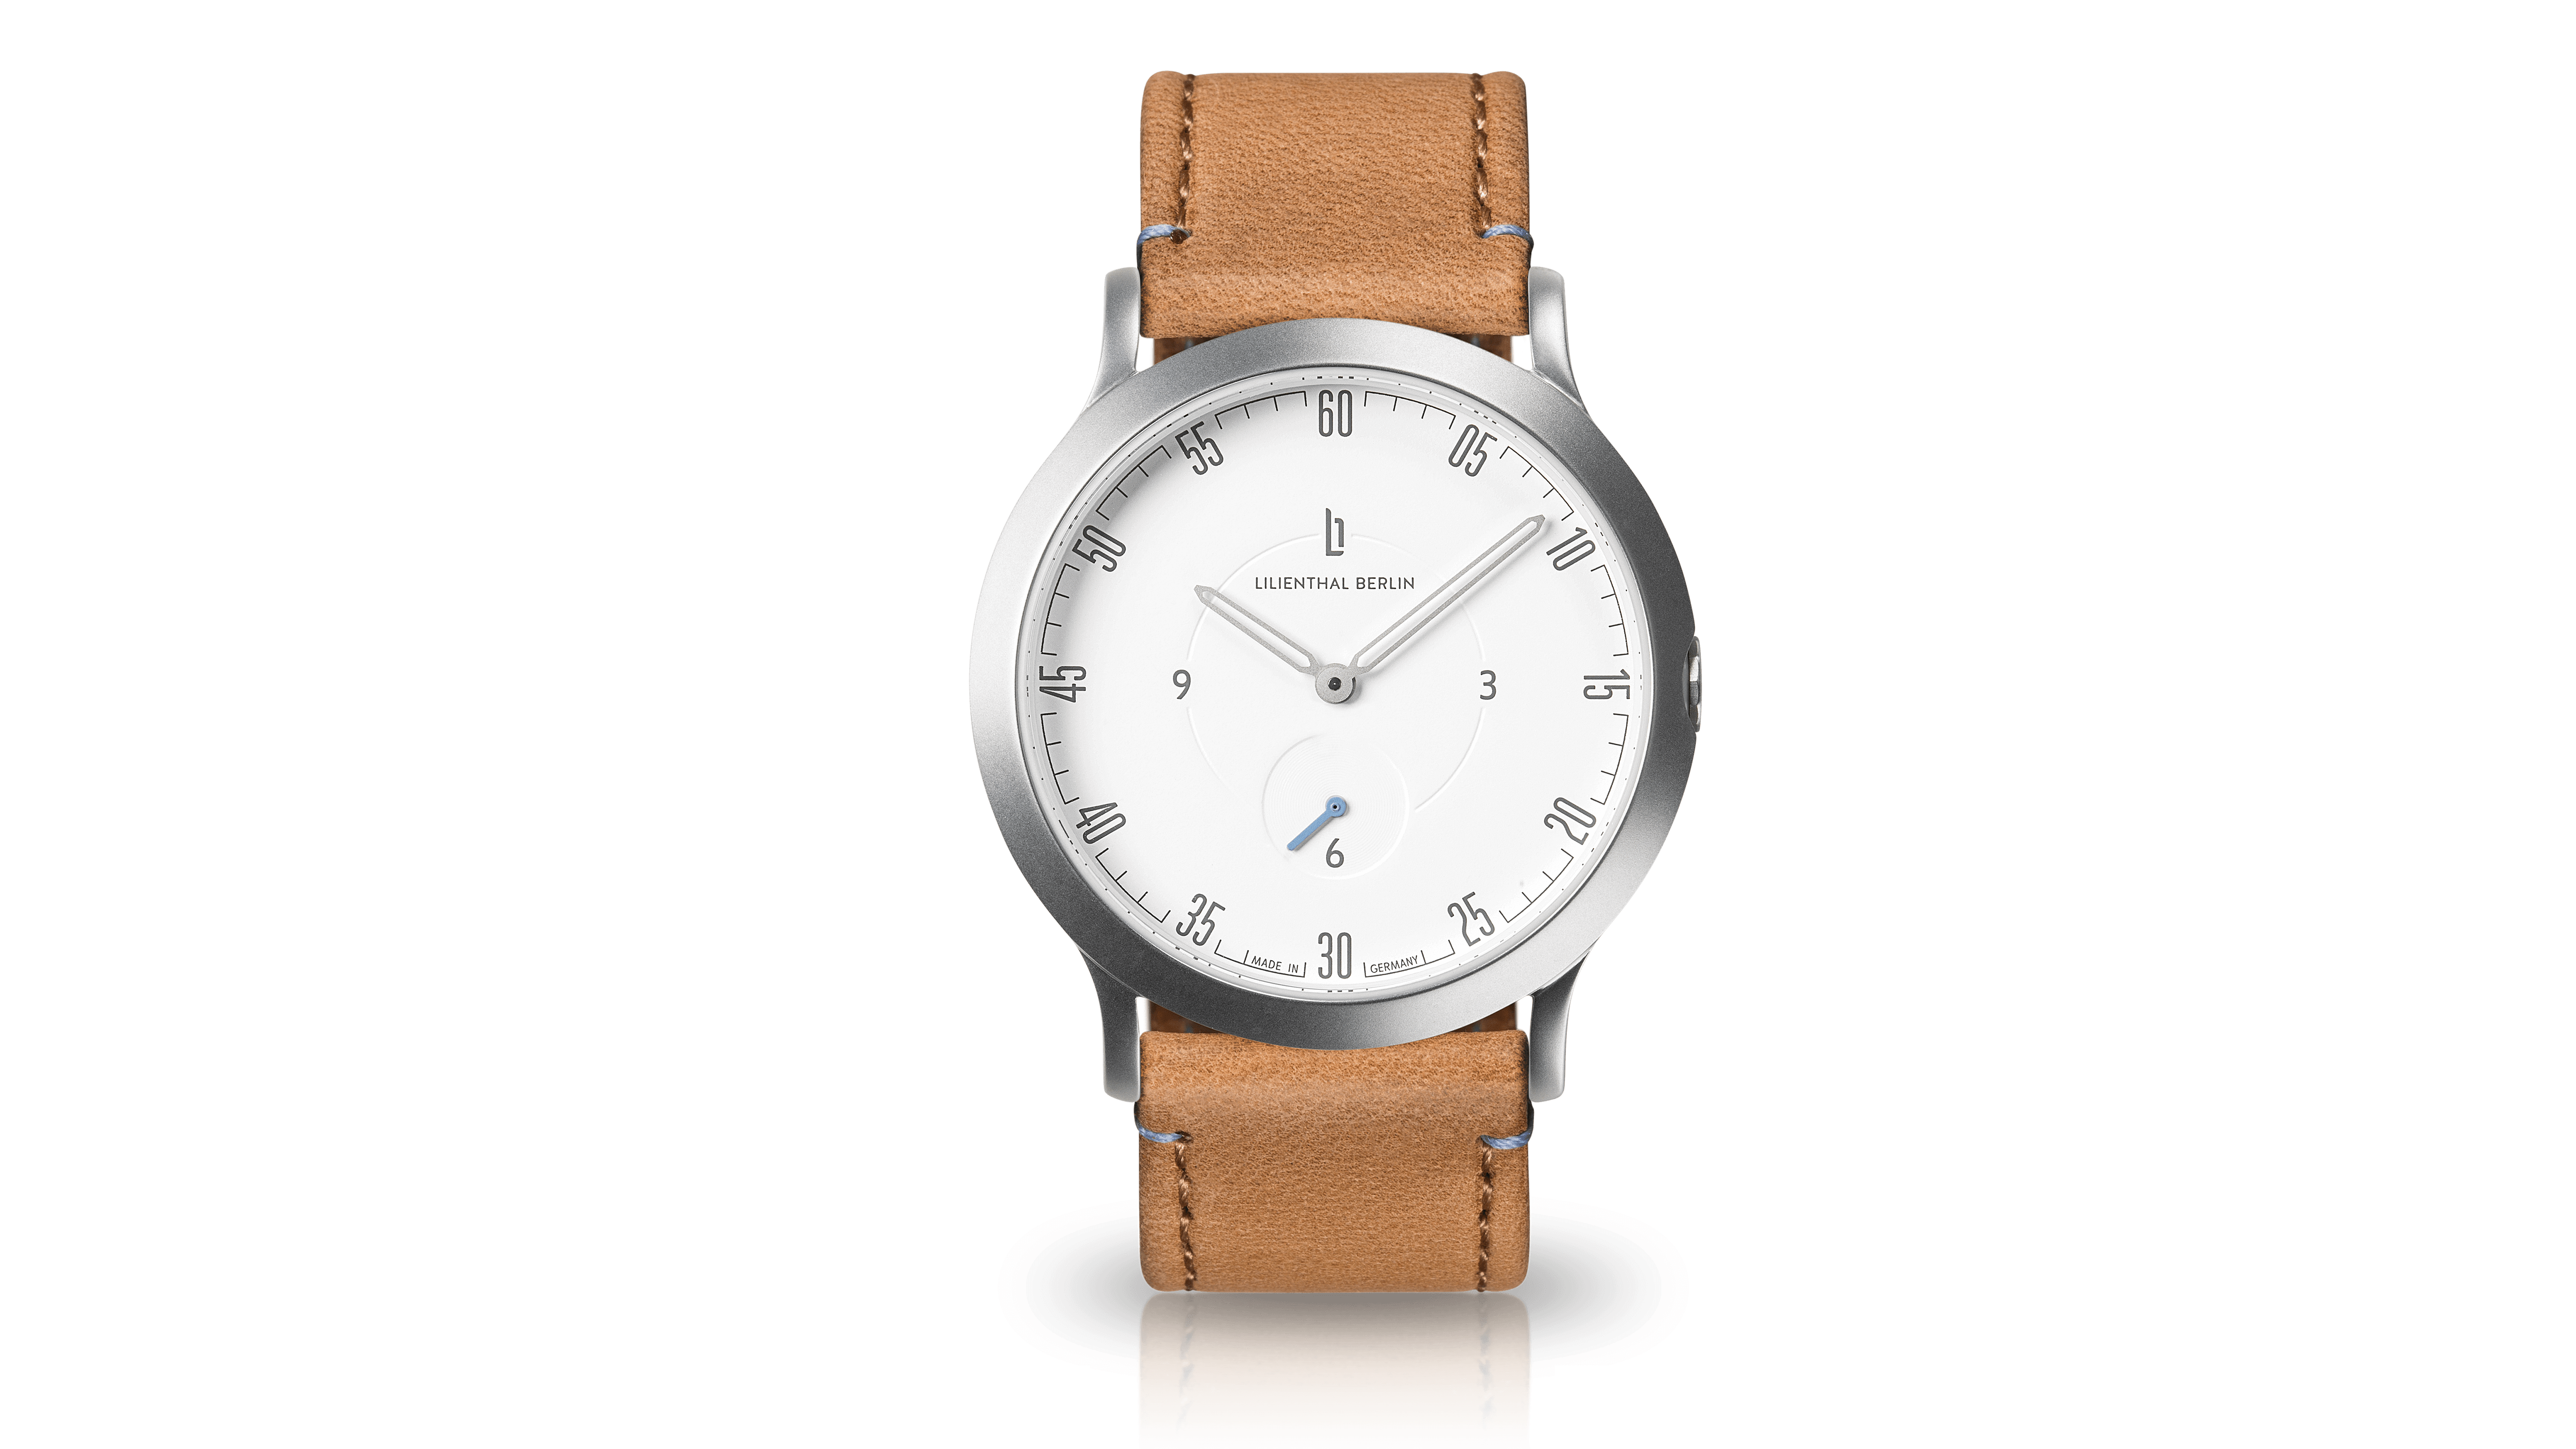 72f41547c6a This Berlin-based watch manufacturer produces some attractive unisex watches  that offer premium quality for a good price. This award-winning  contemporary ...